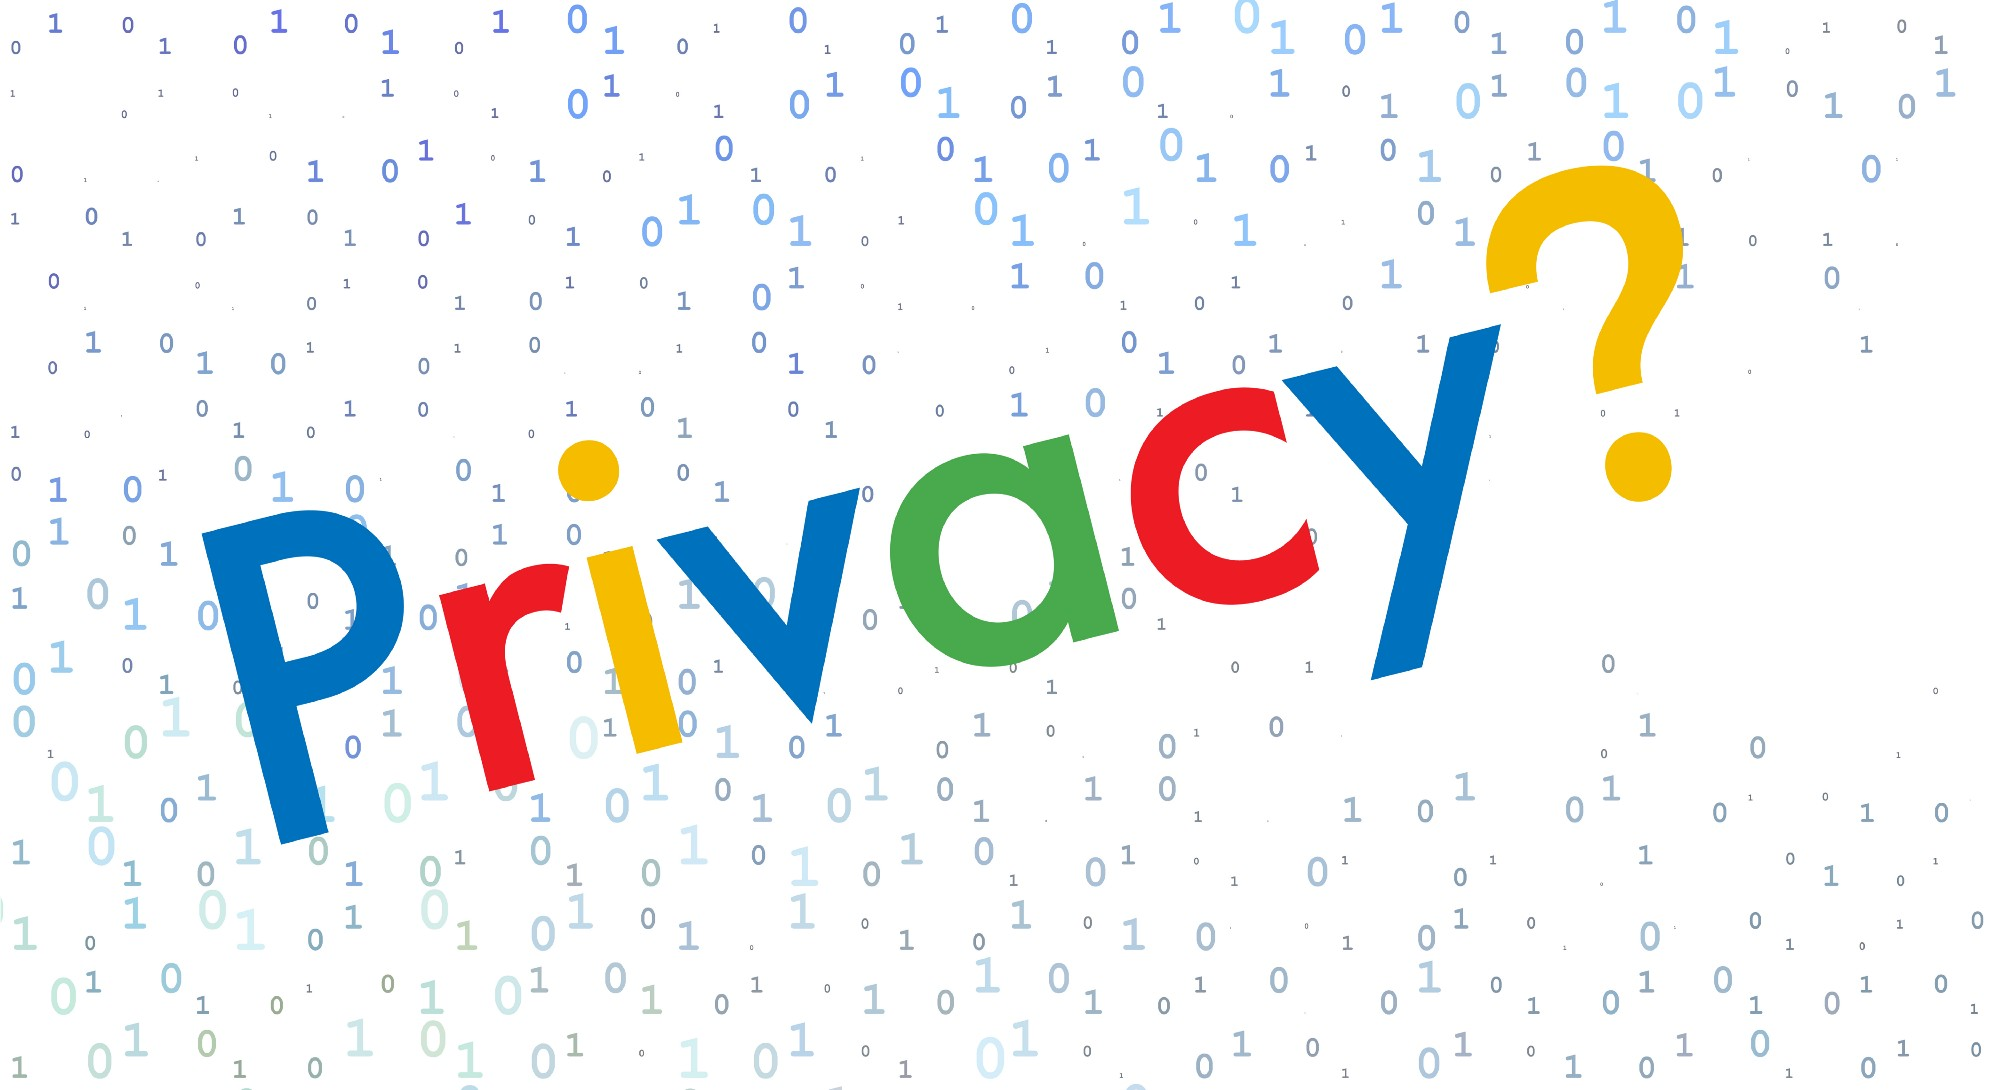 Data Privacy Concerns With Google